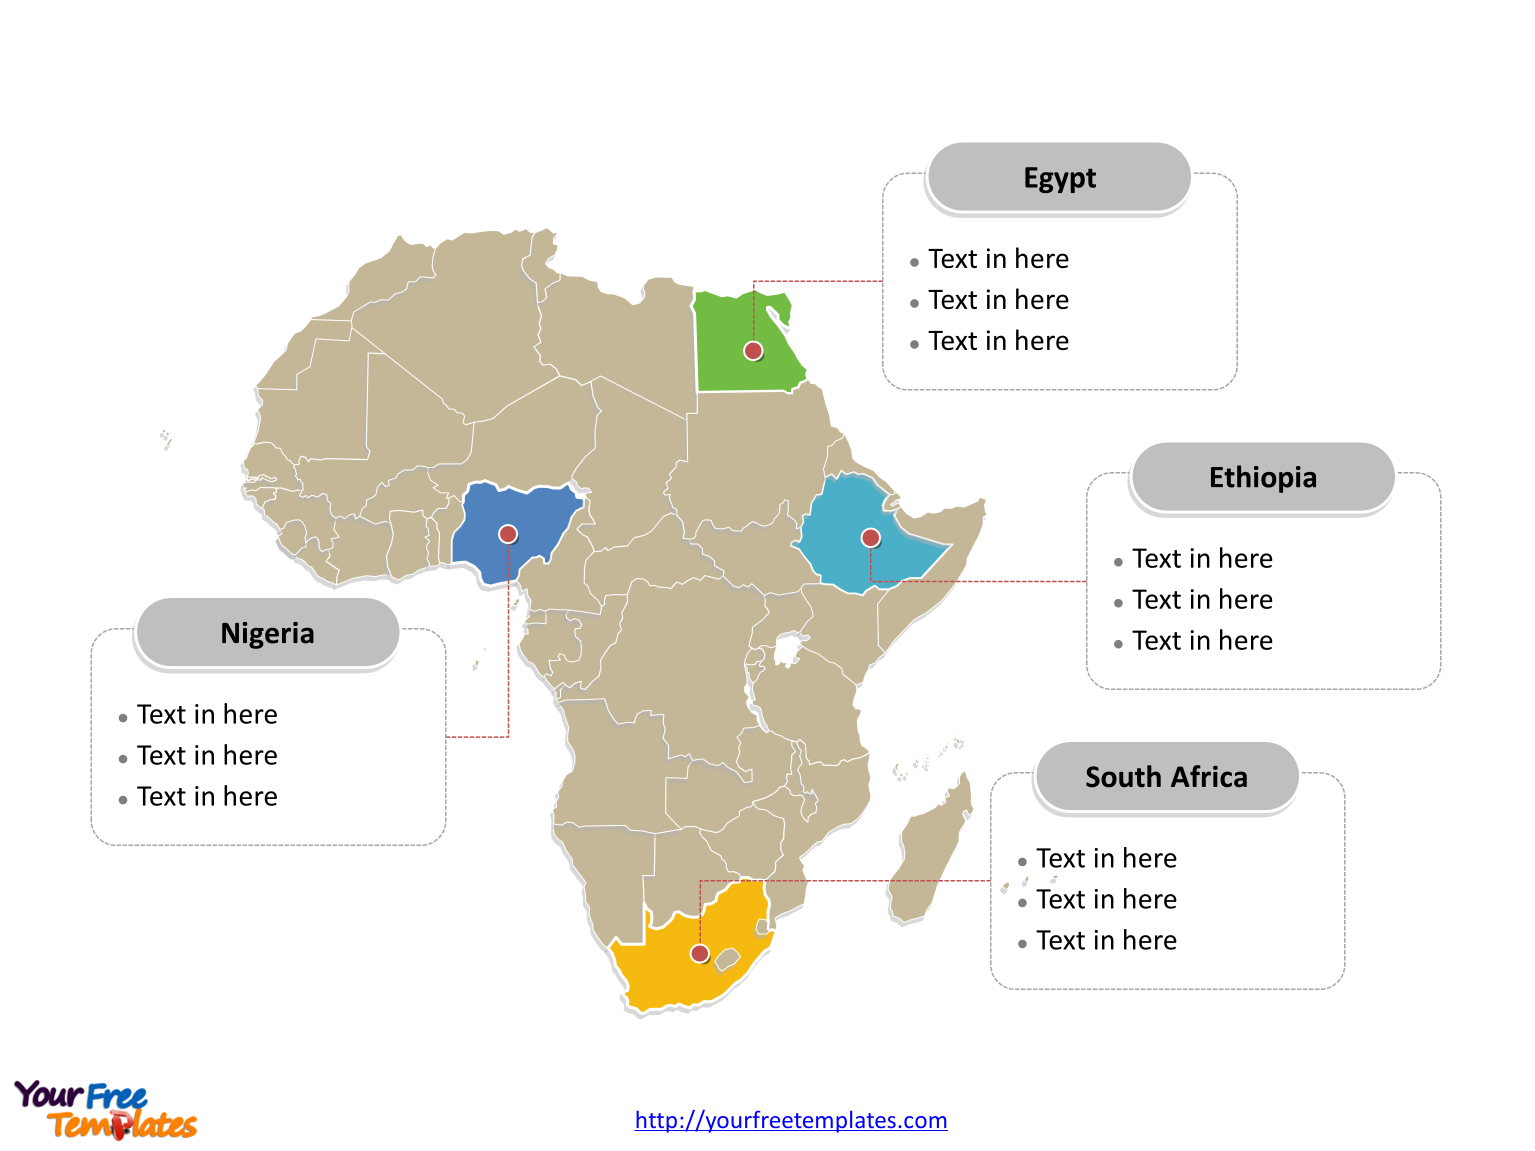 Map of africa free templates free powerpoint templates map of africa with political division and major countries labeled on the africa map free templates toneelgroepblik